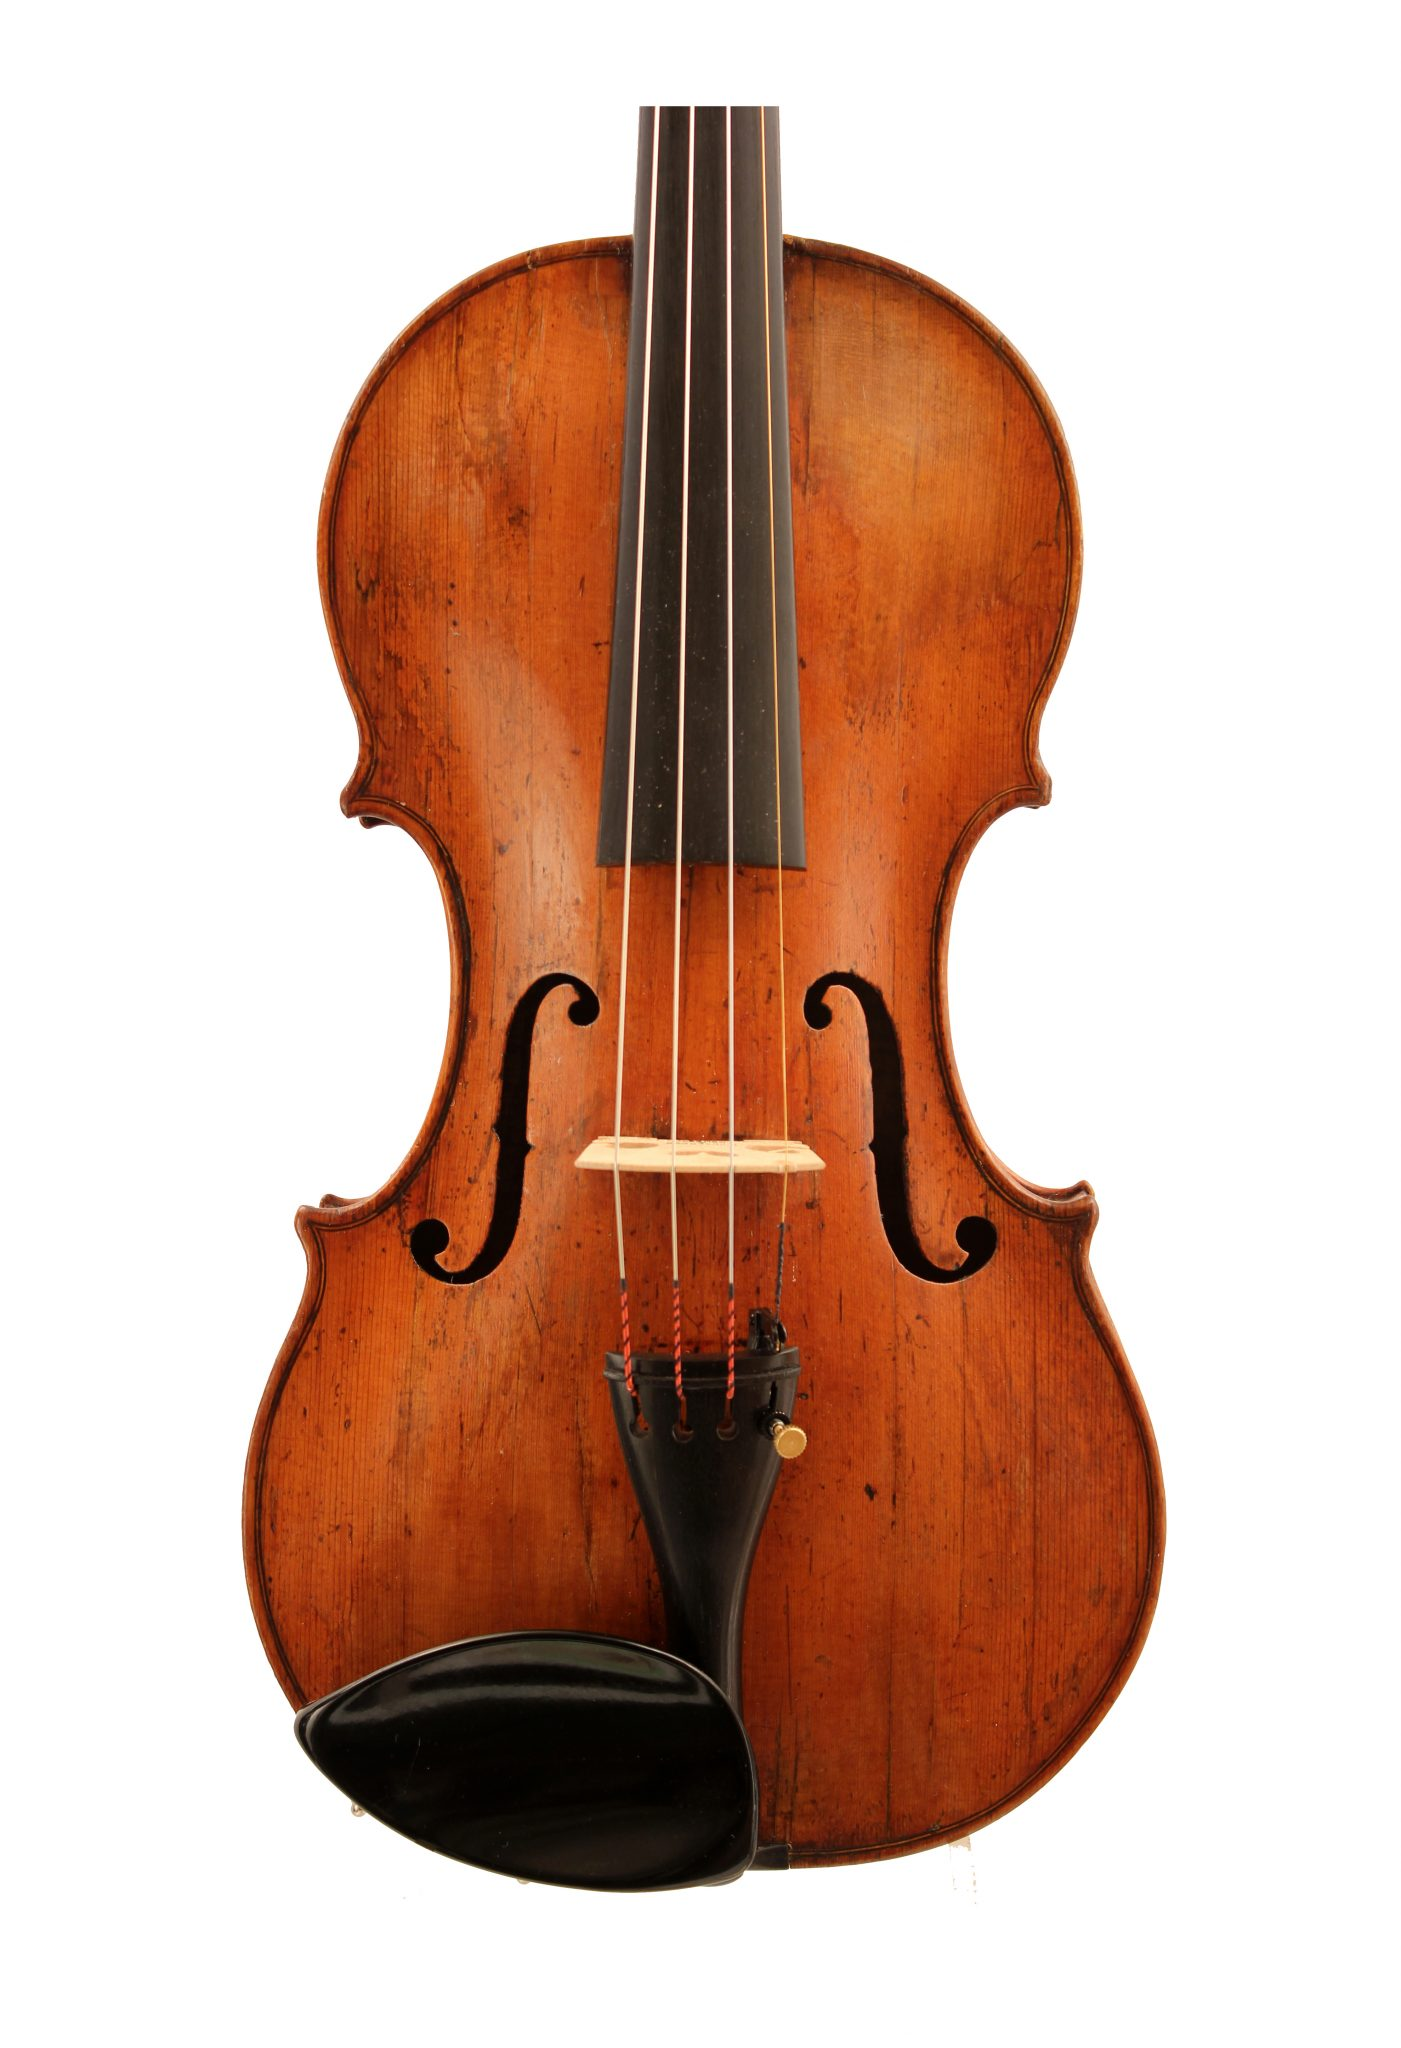 Violin by Marcel Pichler 1677 for sale at Bridgewood and Neitzert London